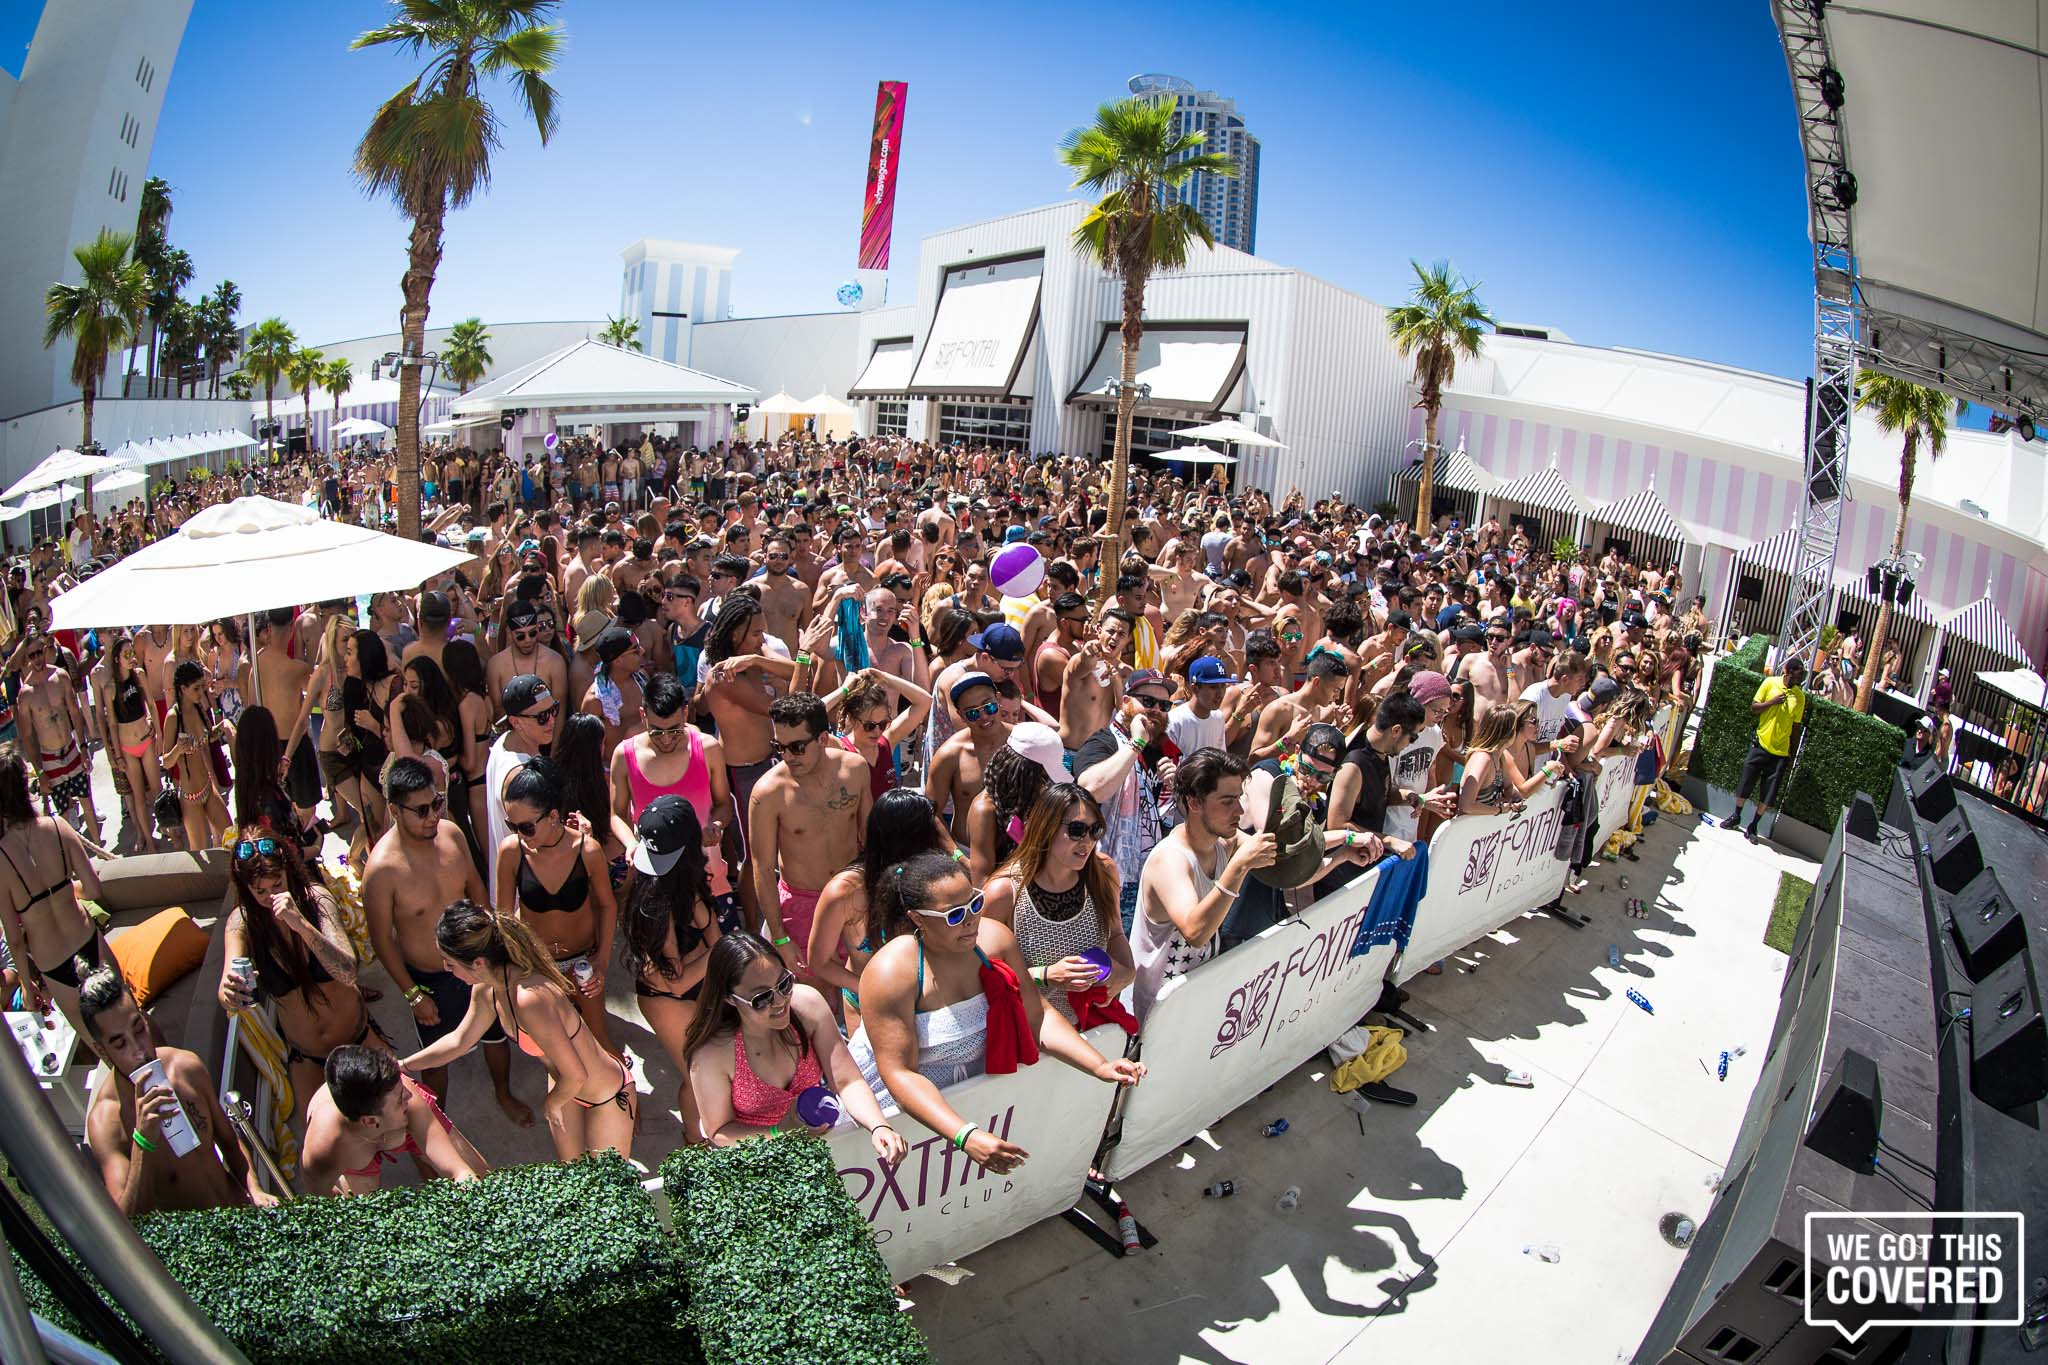 Gallery: Buygore Pool Concert